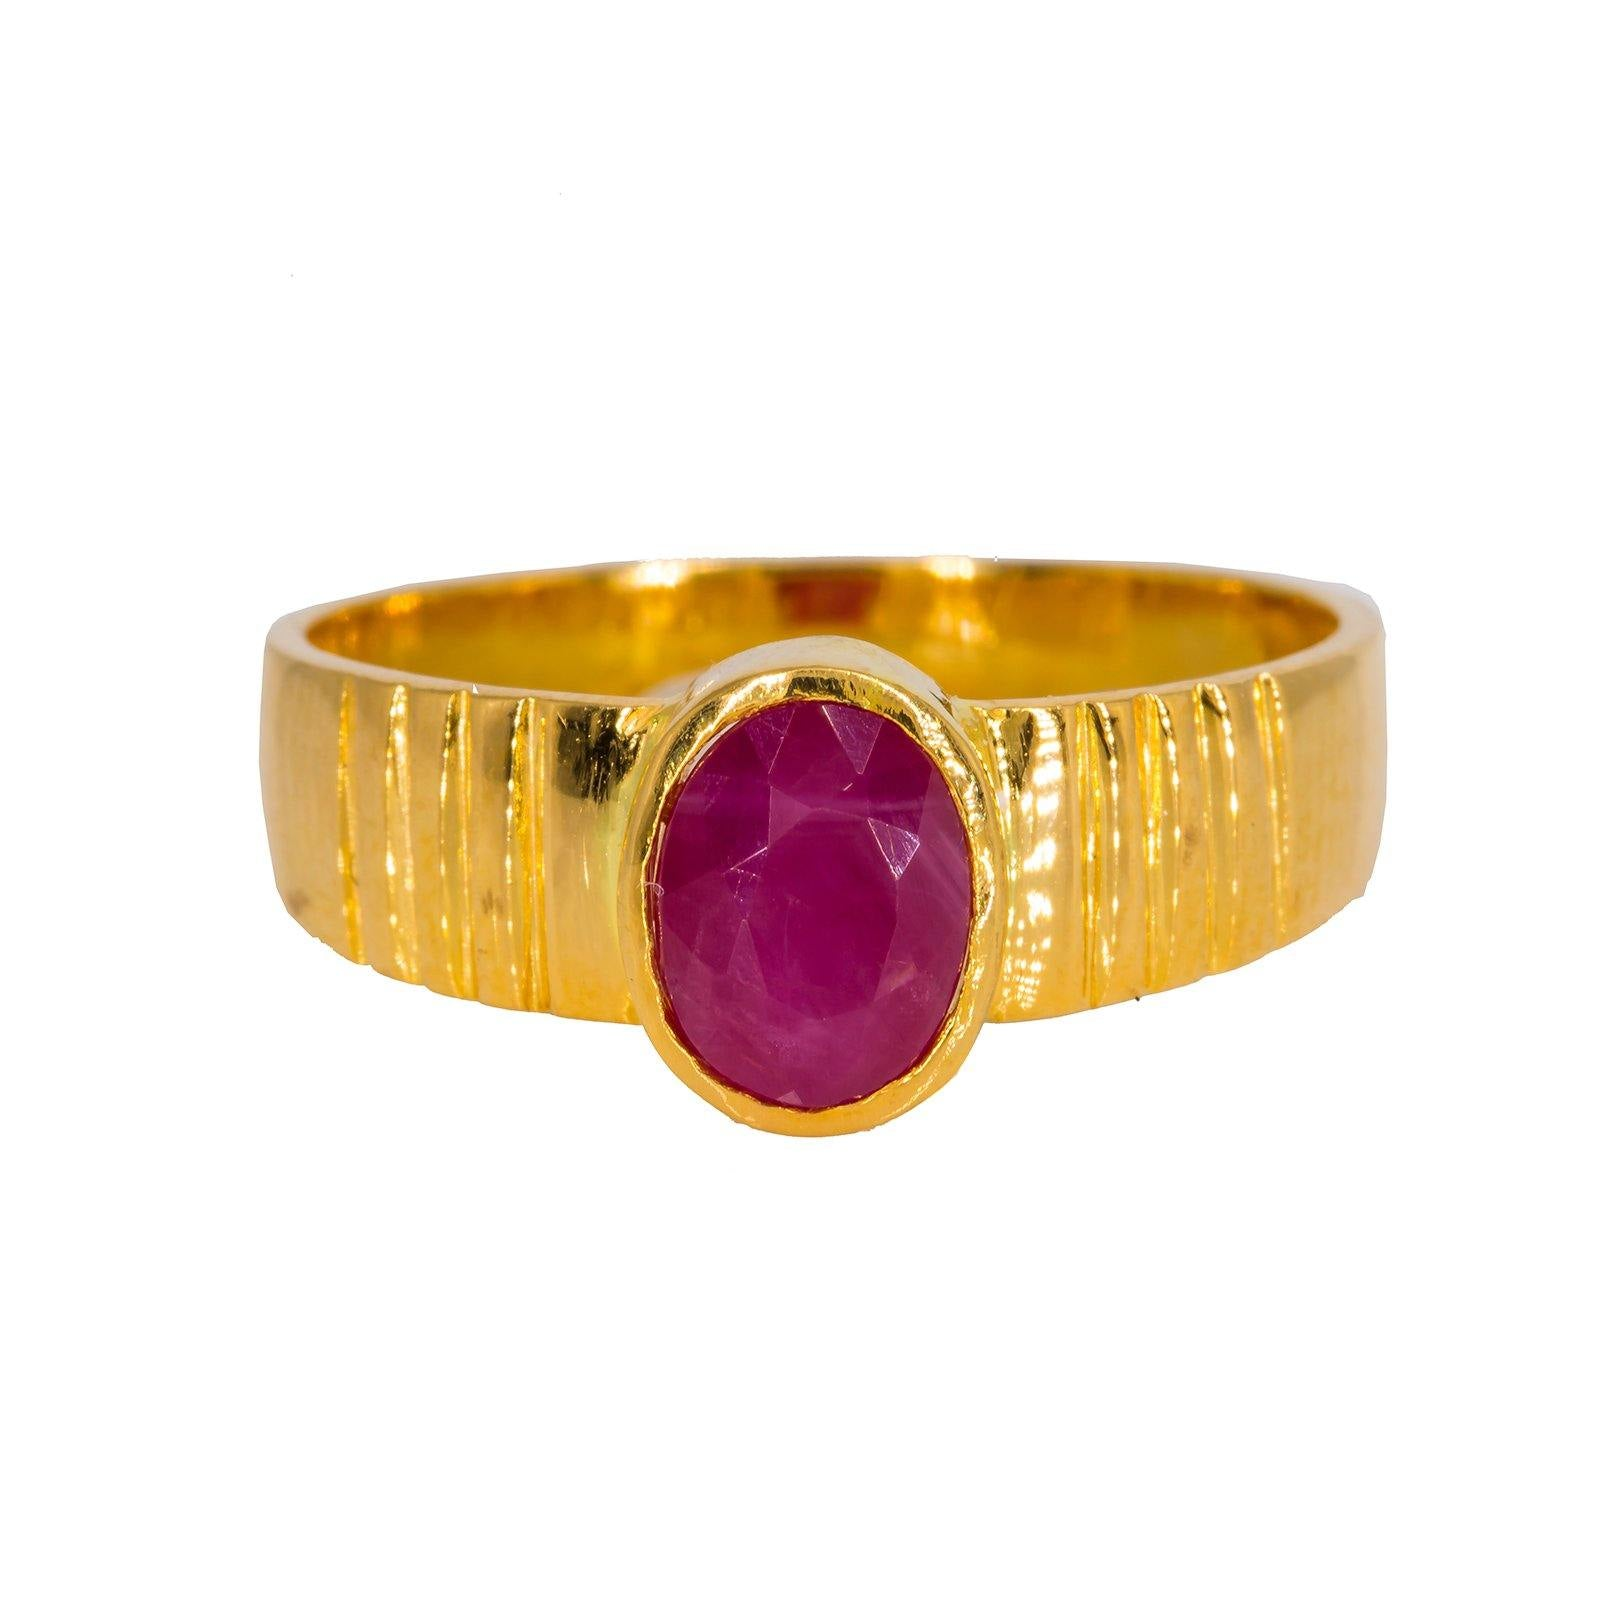 22K Yellow Gold Men's Ring W/ Ruby & Semi-Lined Band